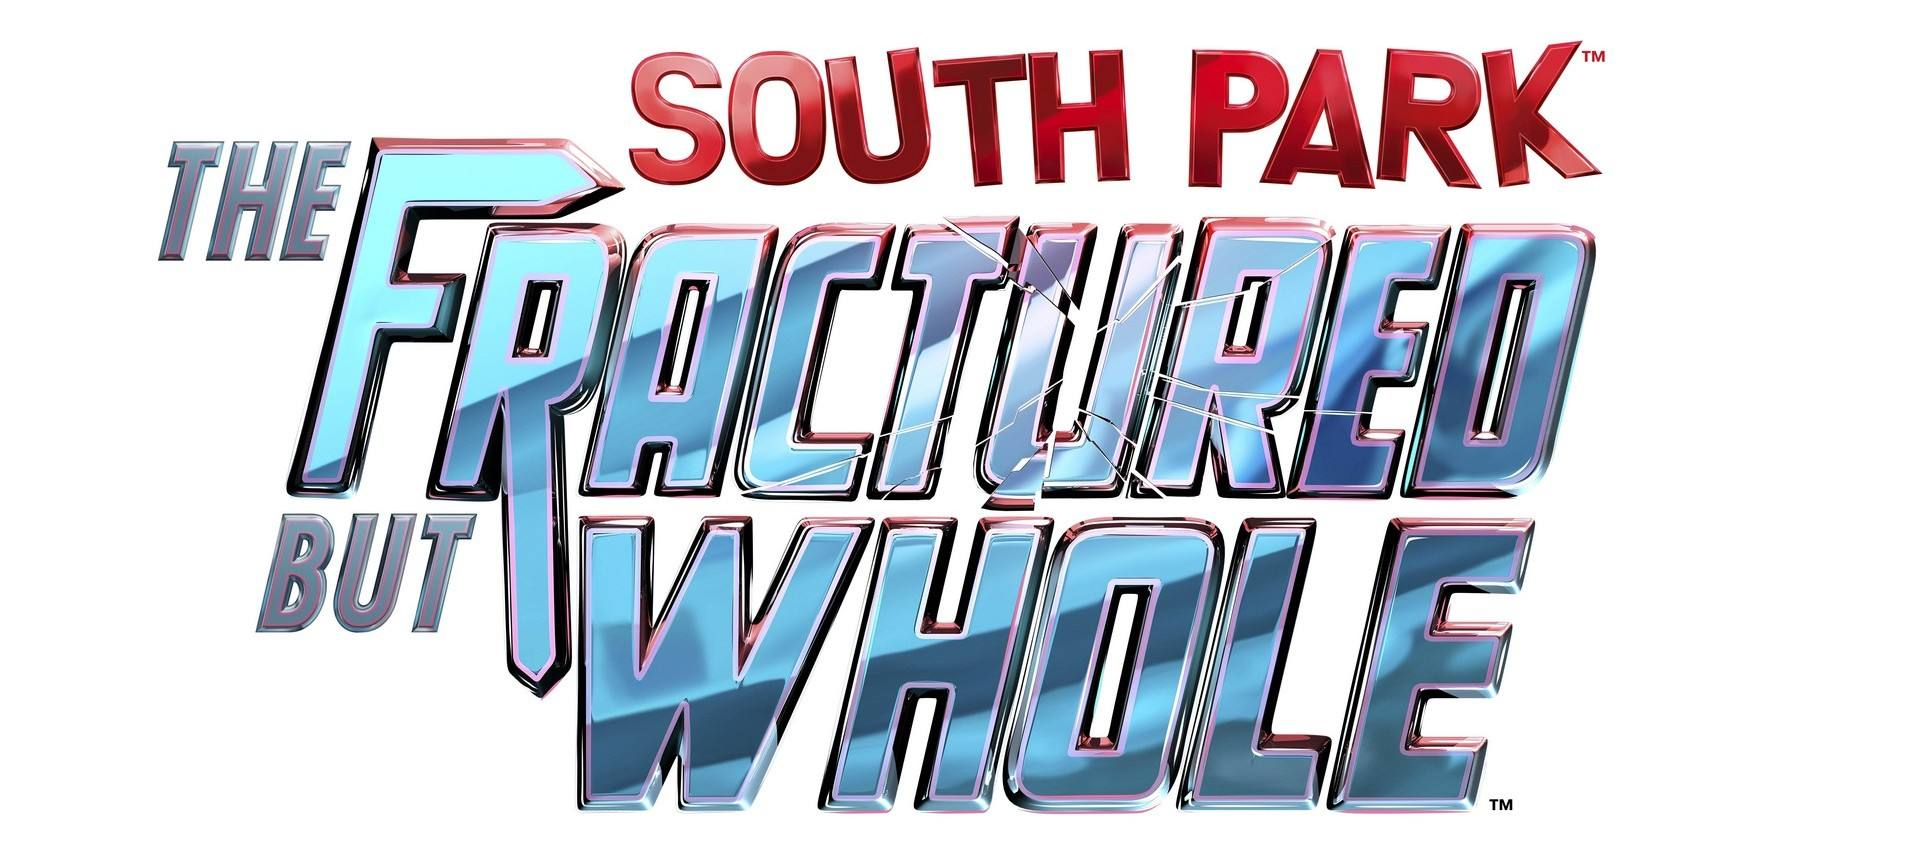 South-Park-The-Fractured-But-Whole_2016_06-13-16_021